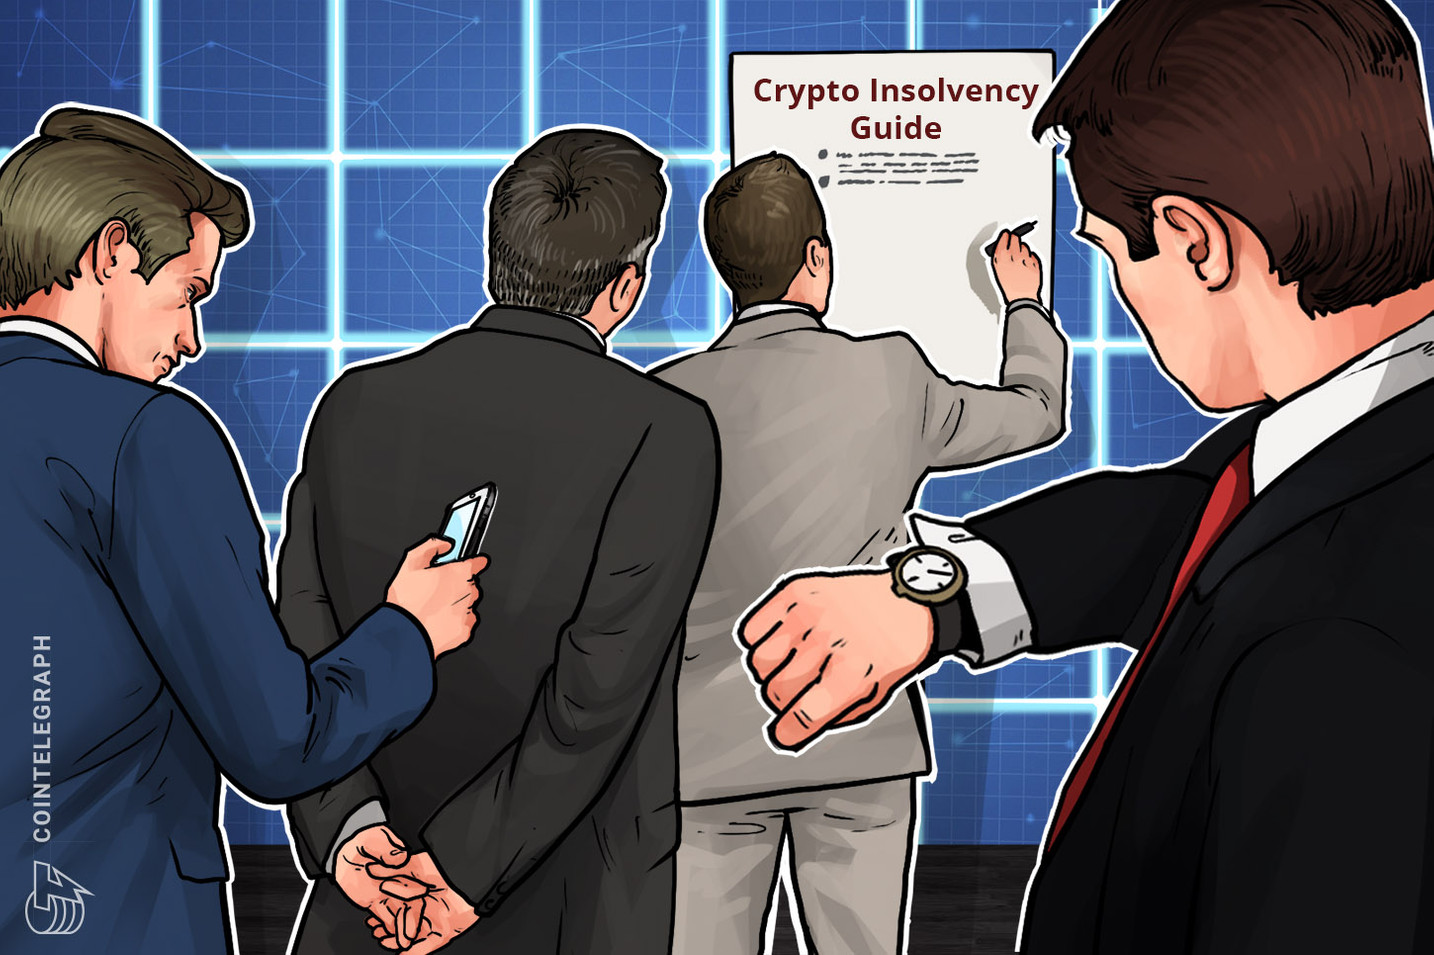 Big Four Auditor PwC Publishes Crypto Insolvency Guide, Cautions Directors